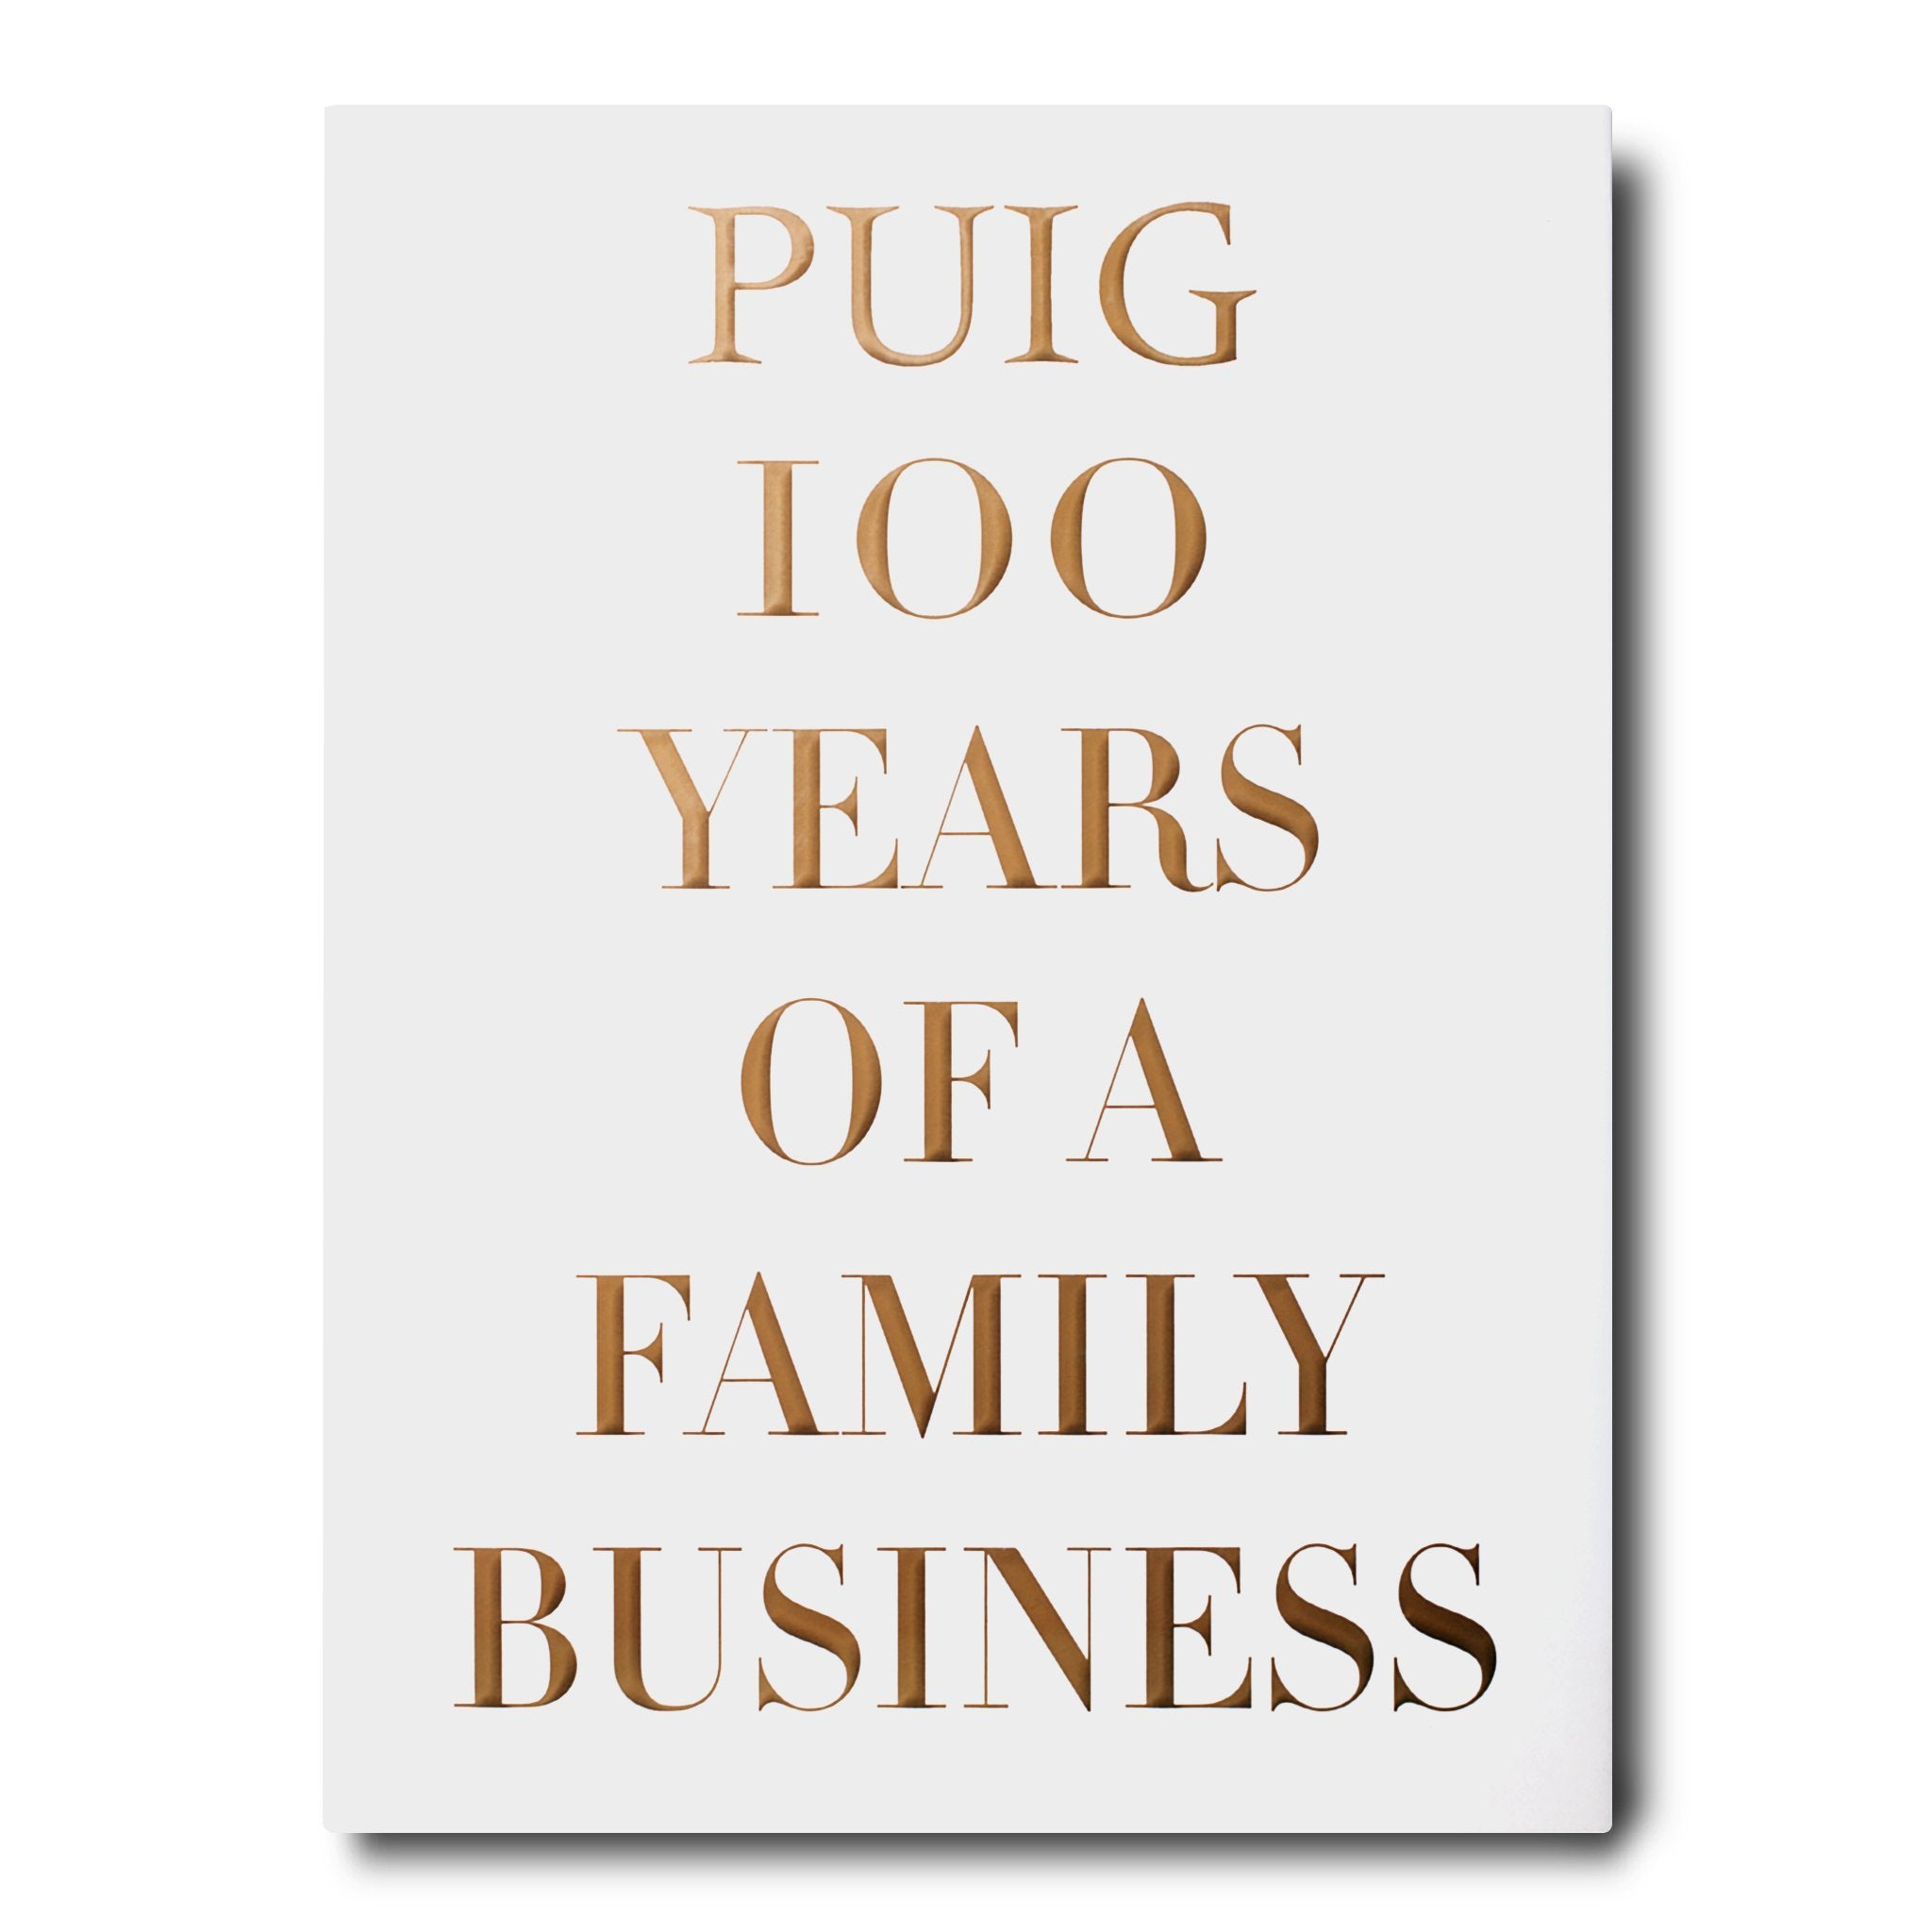 ASSOULINE I PUIG, 100 YEARS OF A FAMILY BUSINESS